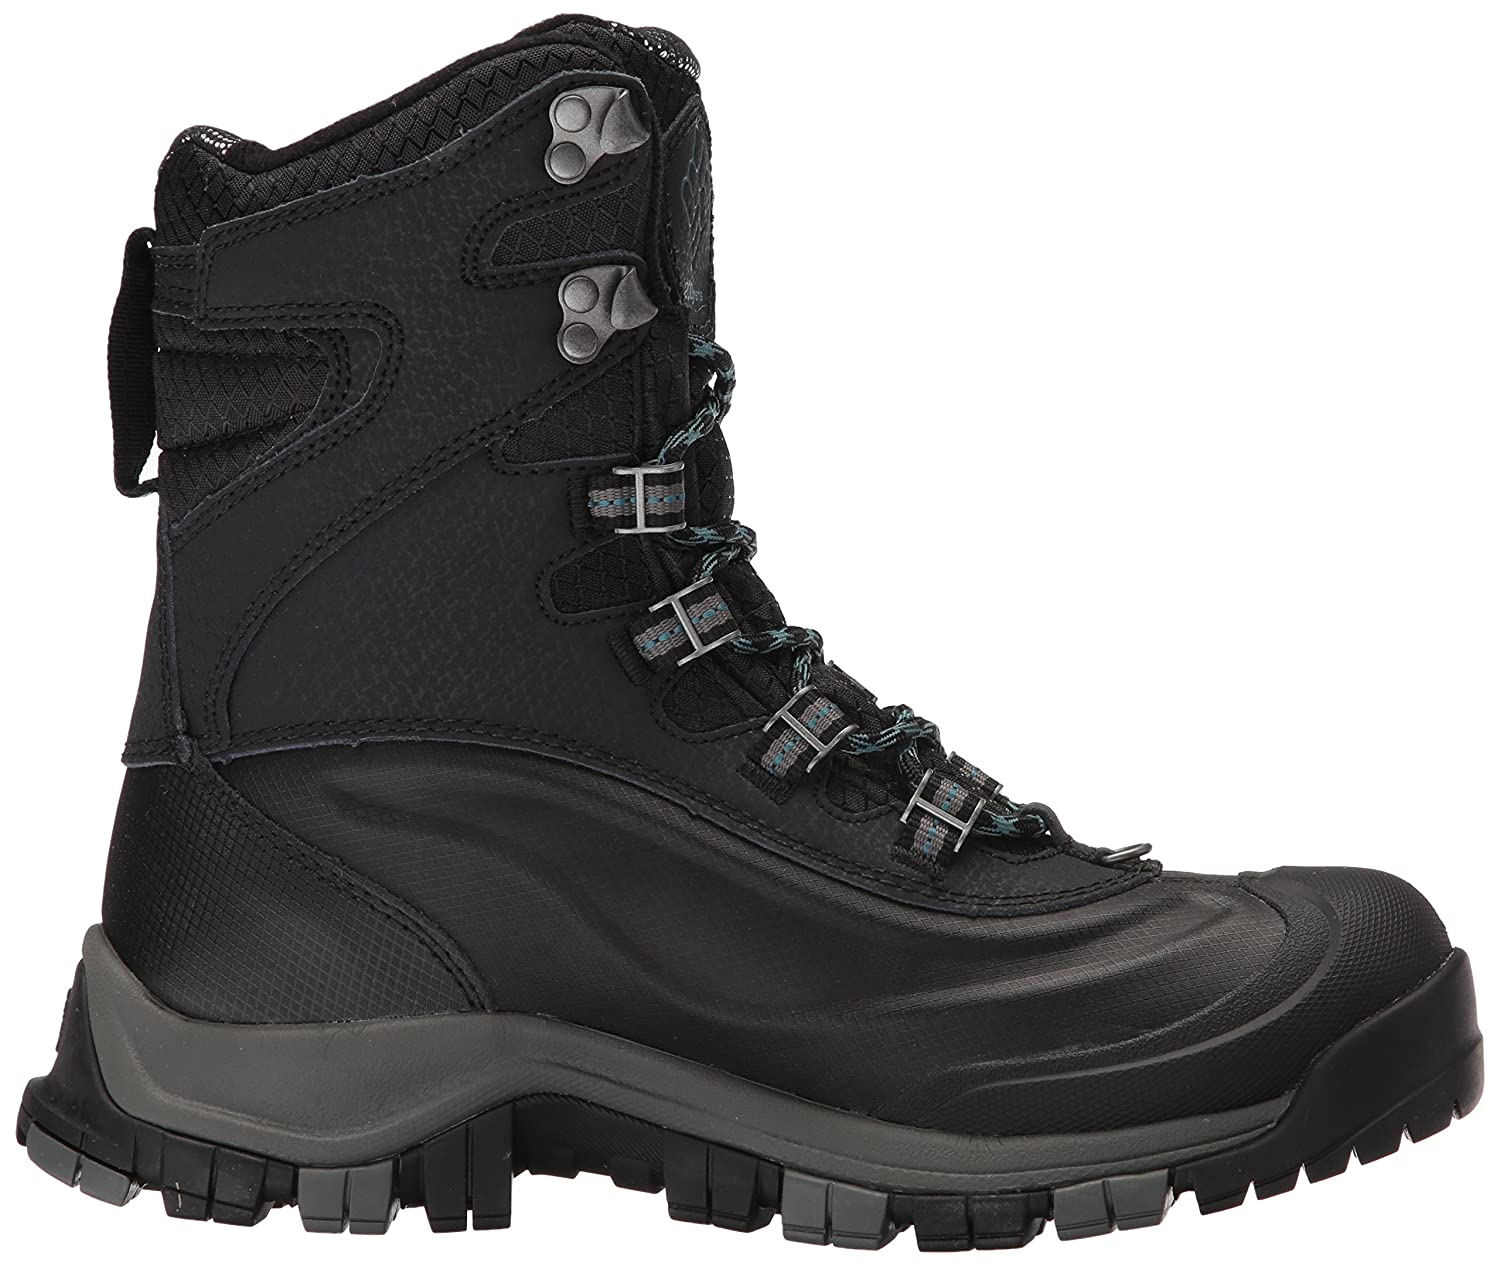 Columbia Michelin Women's Bugaboot Plus Omni-Heat Michelin Columbia Snow Boot B01NCNRE9Q 9.5 B(M) US|Black, Cloudburst 81e2e4